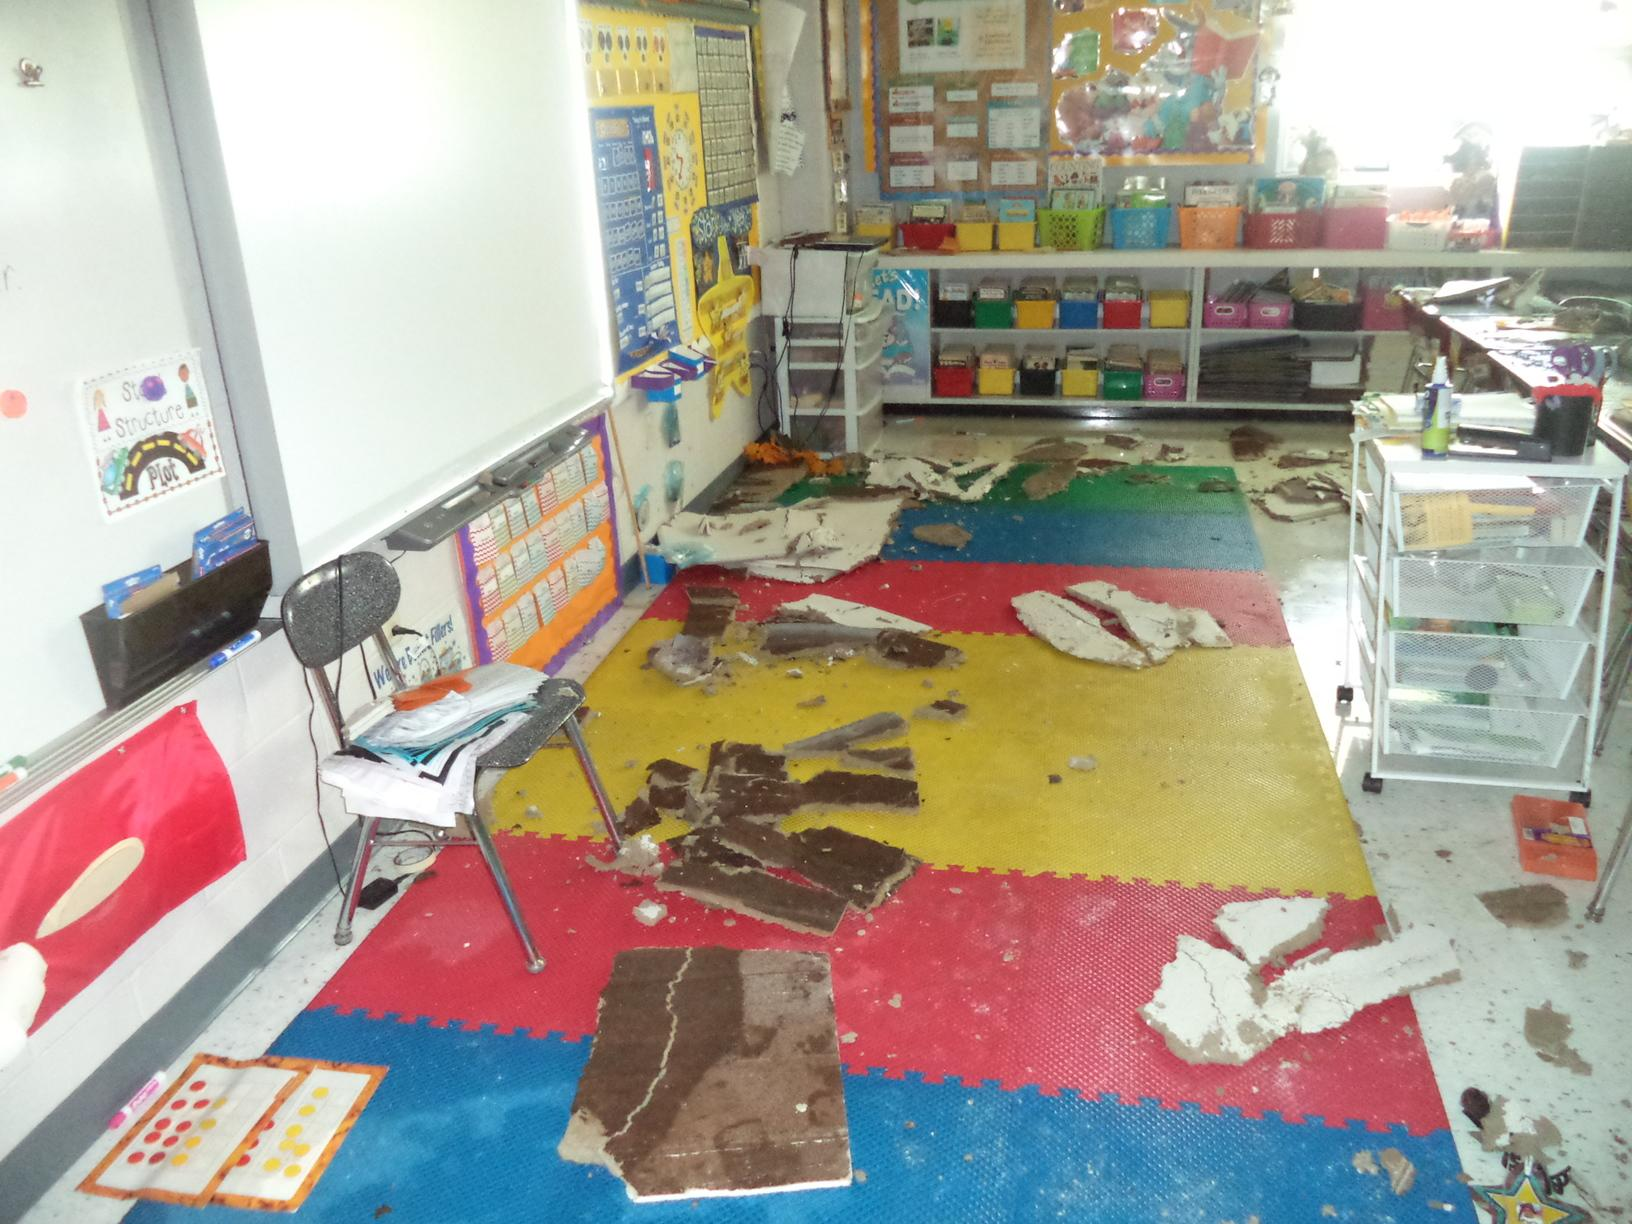 RCS worked diligently to remove all the damaged material and broken ceiling